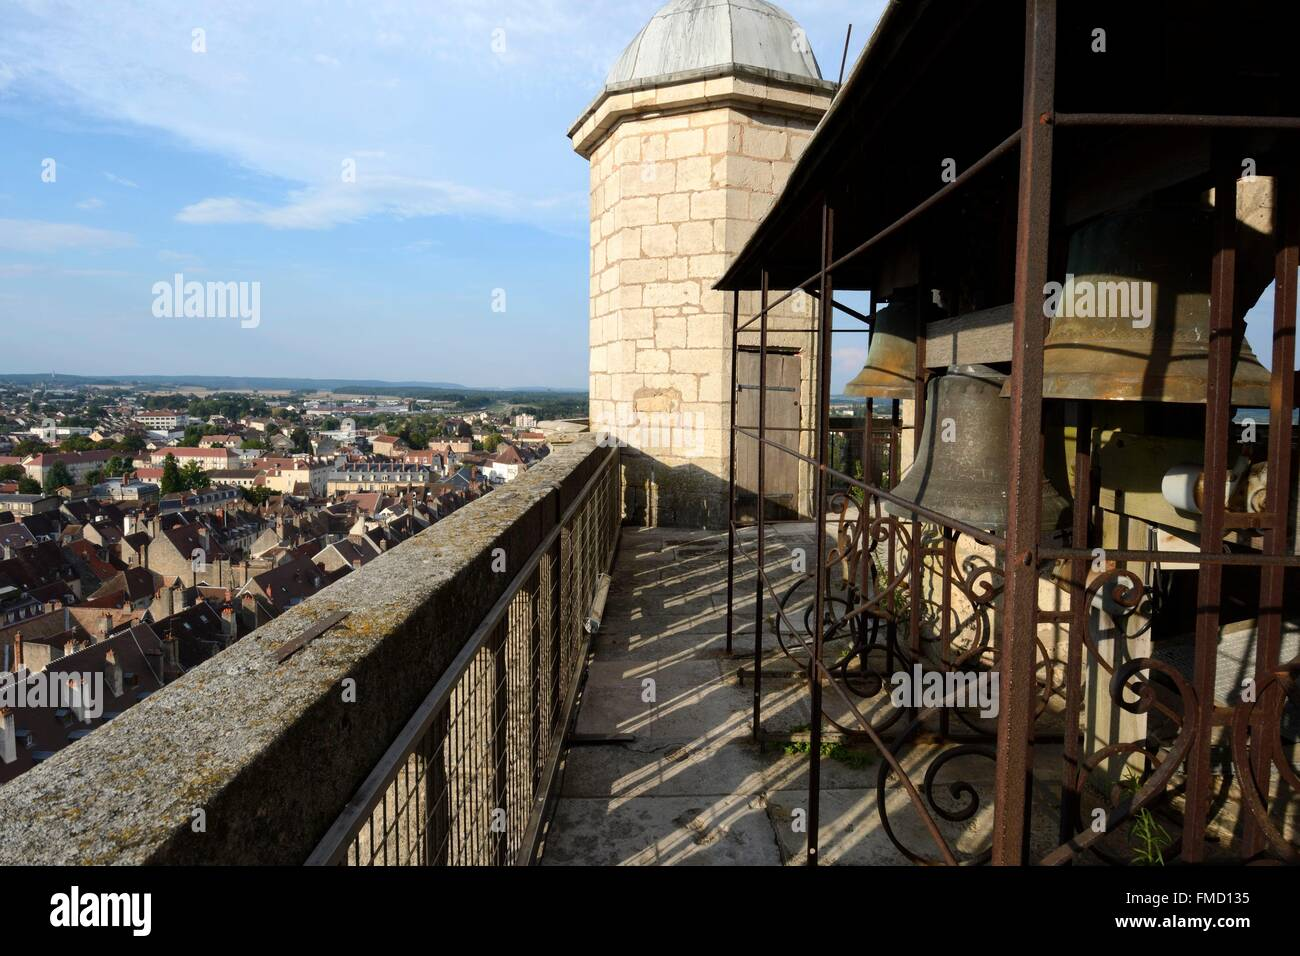 France, Jura, Dole, Notre Dame collegiate church dated 16th century, top of the bell tower, 4 bells ringing quarters - Stock Image